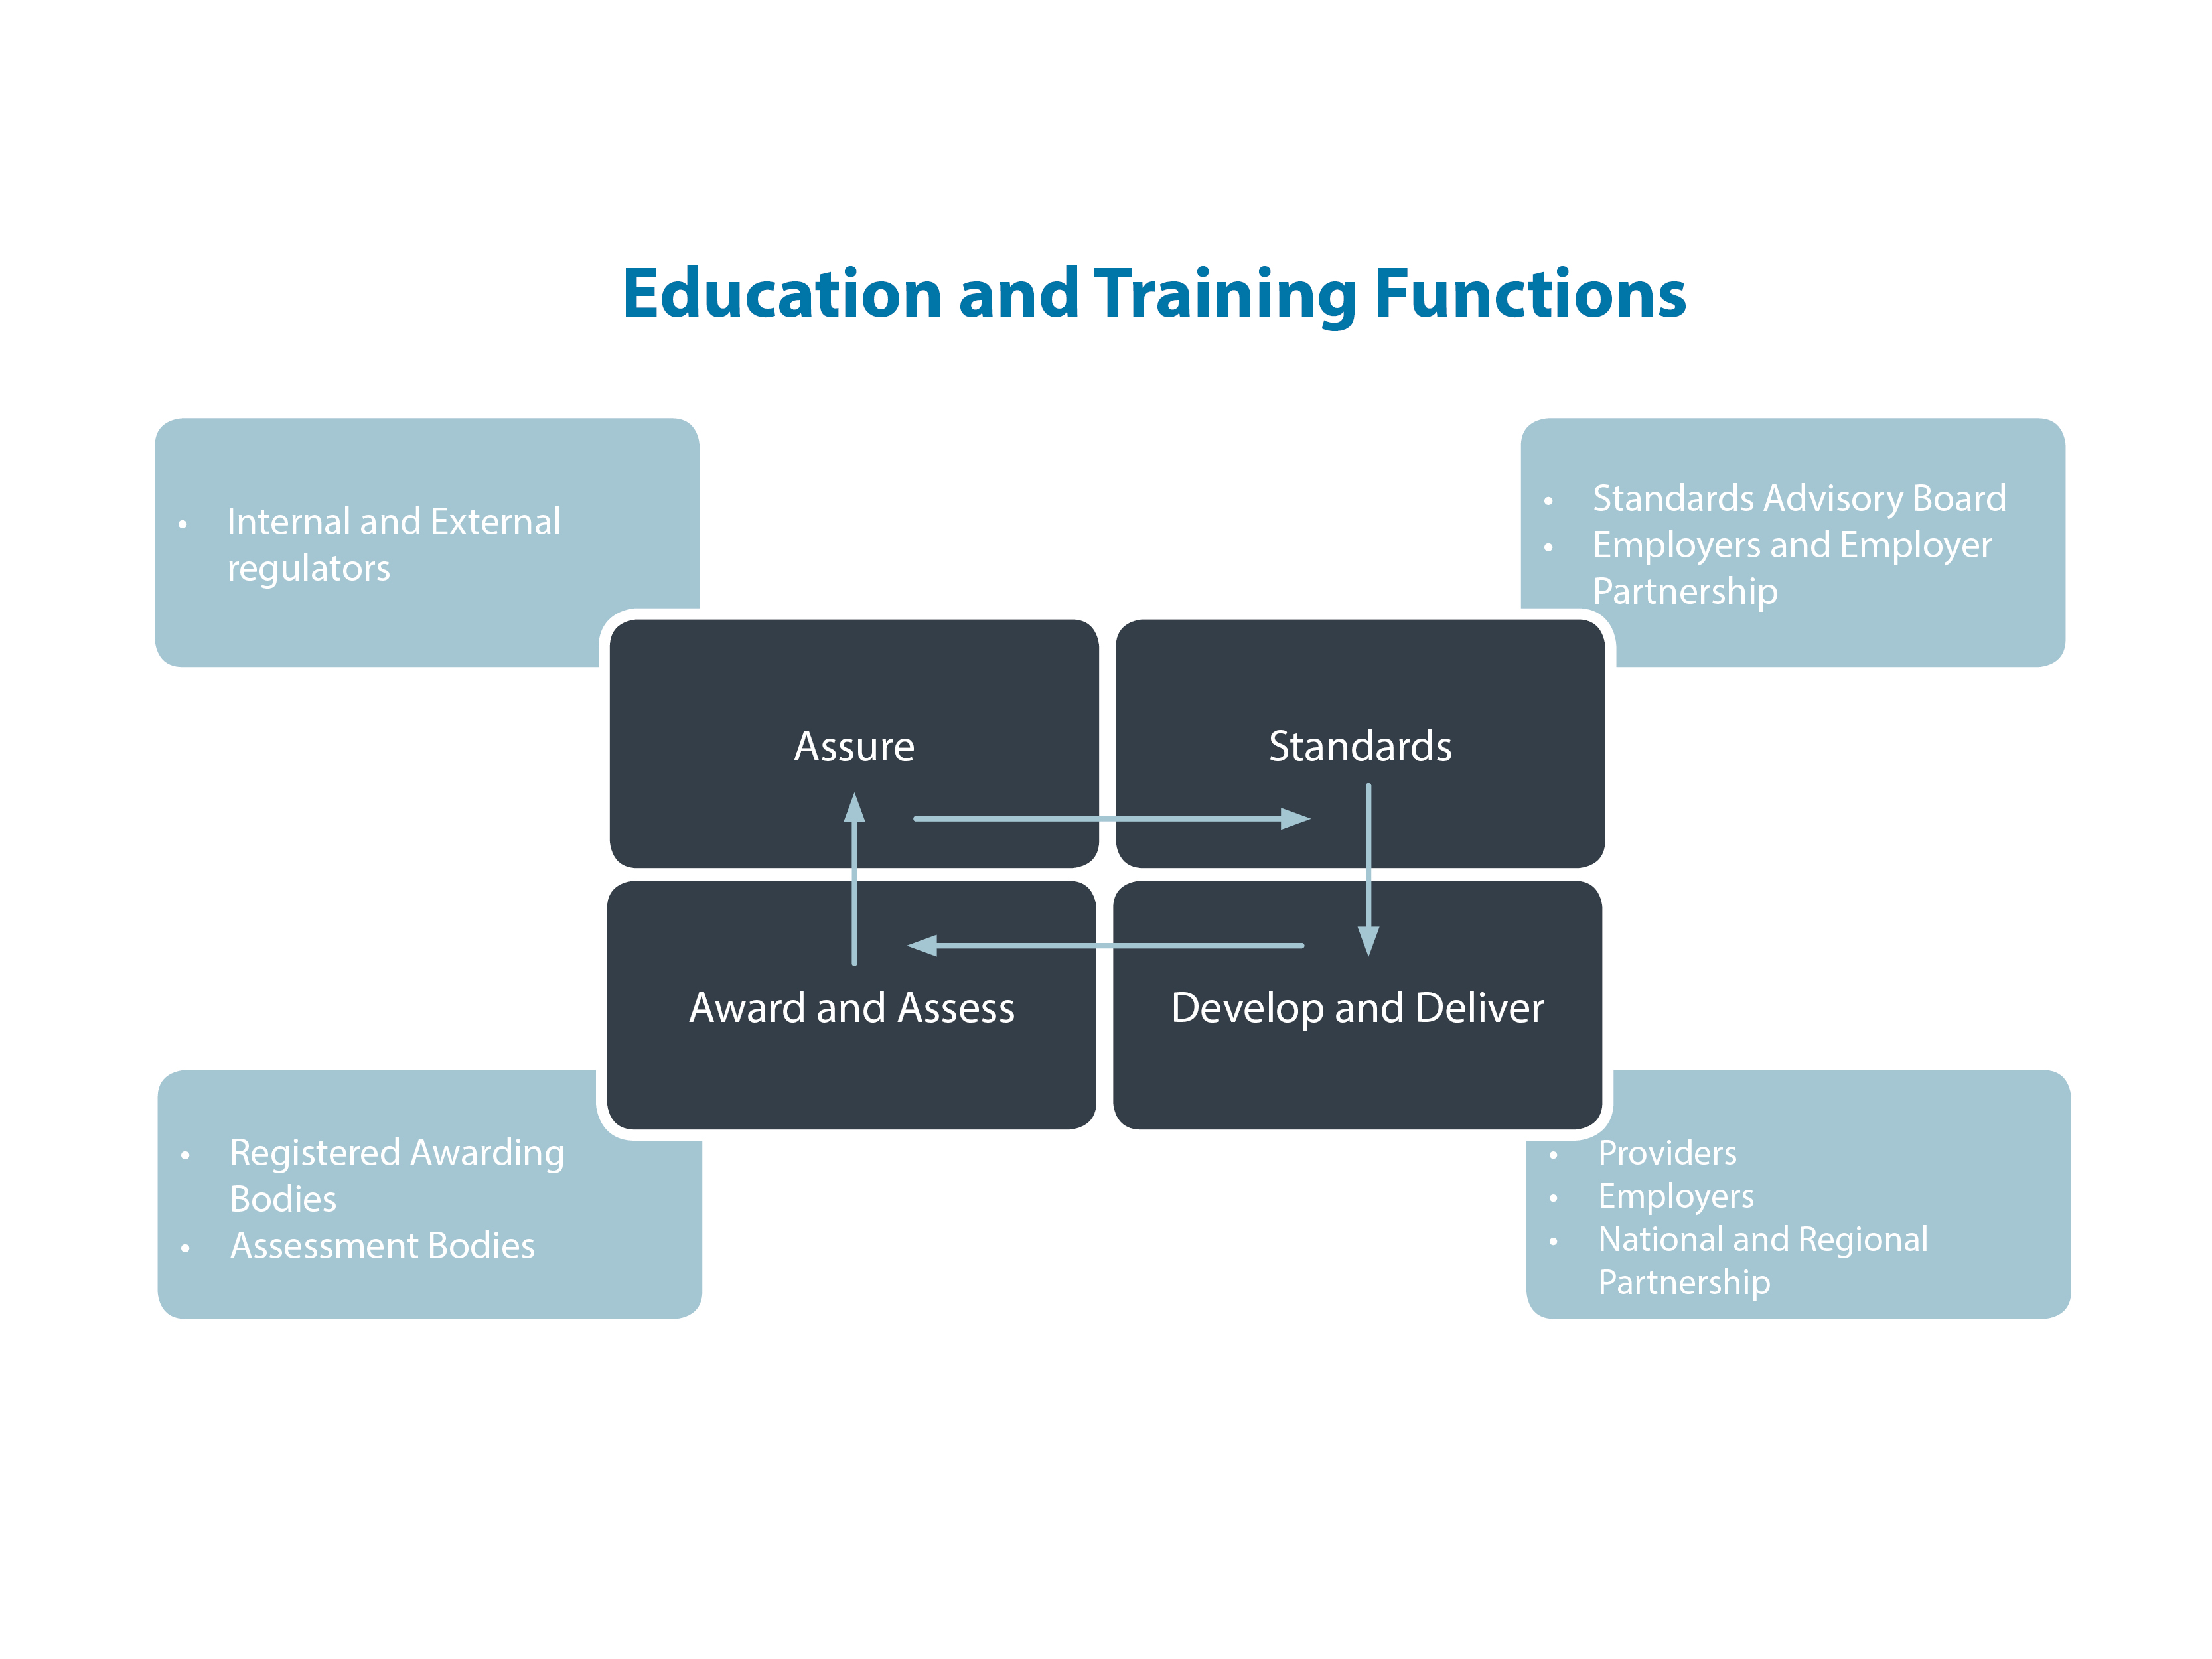 Education and Training Functions